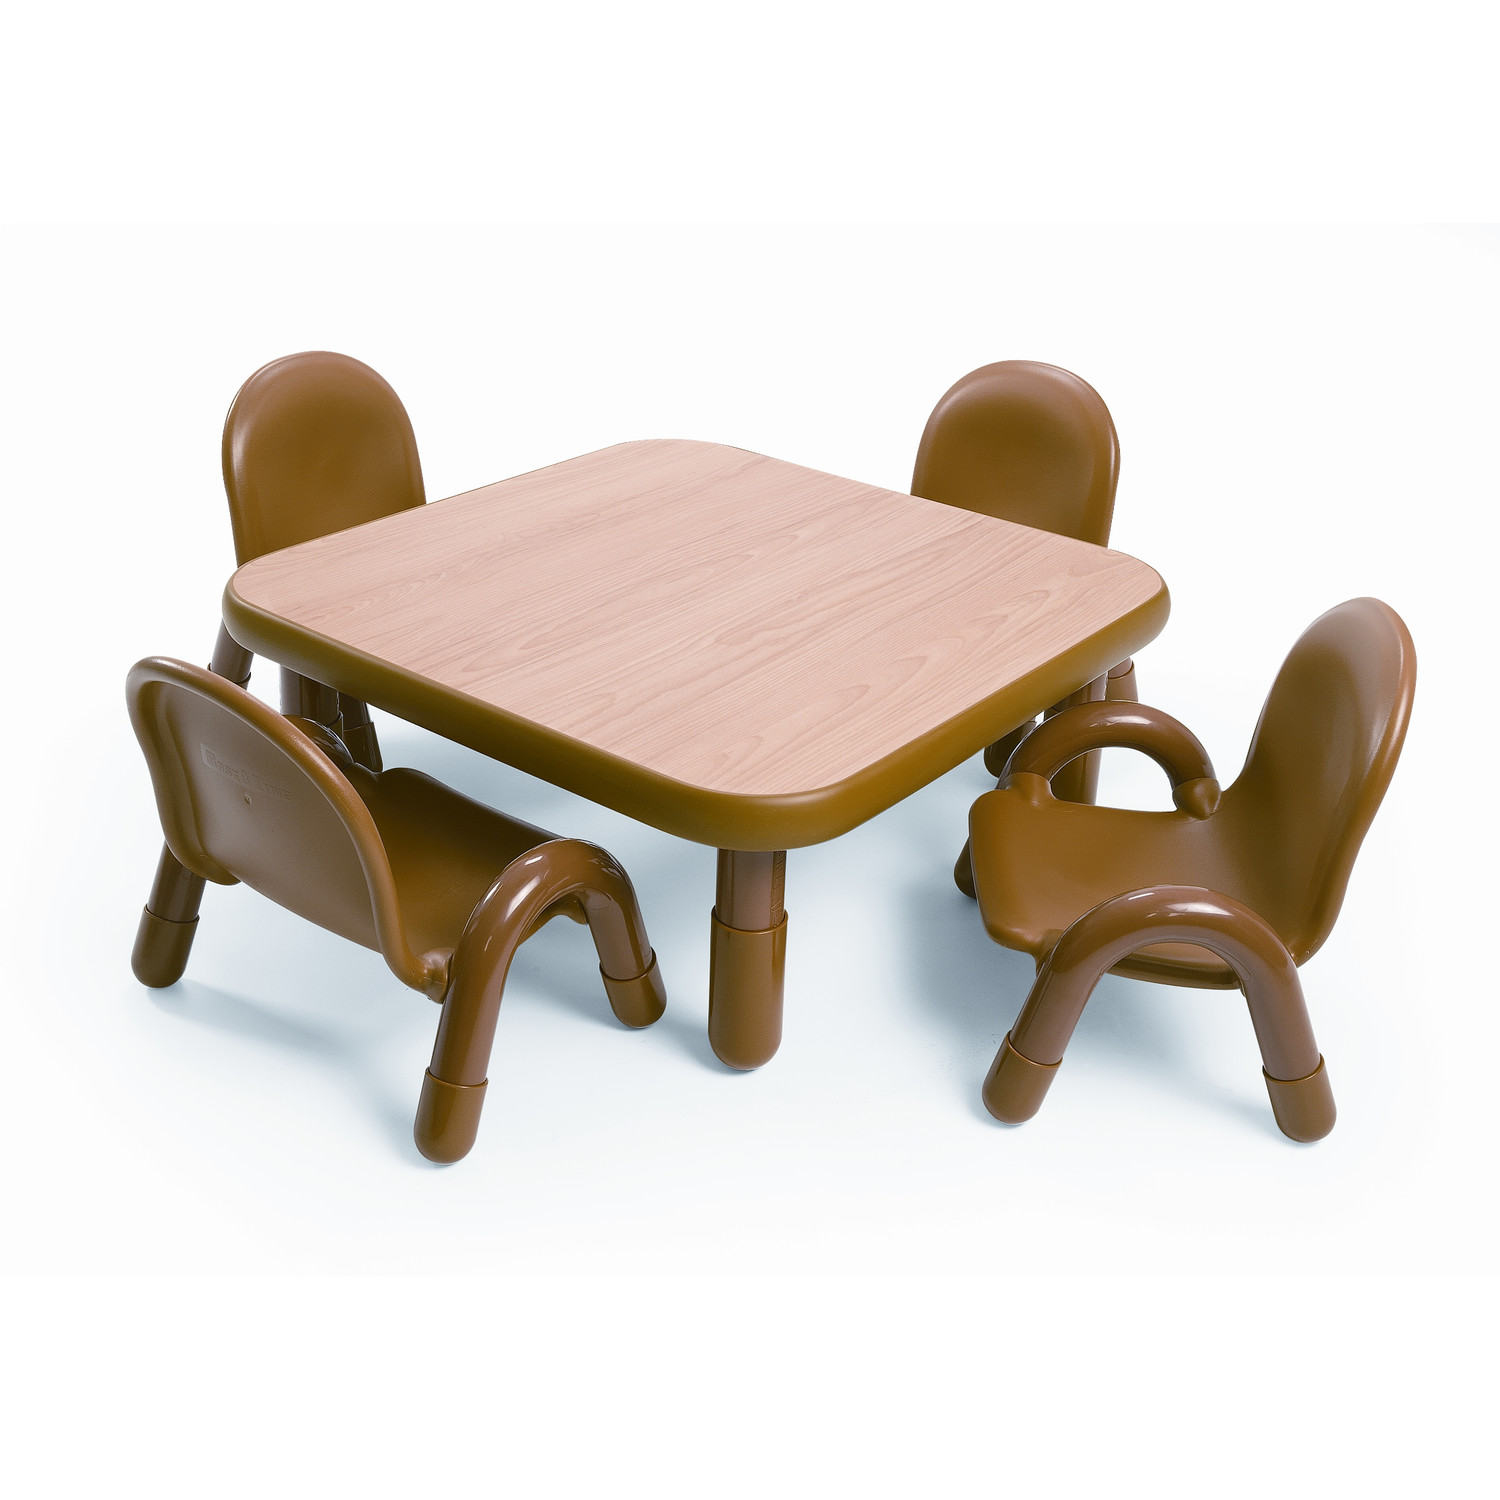 Simple Minimalist Dining Set: Simple And Minimalist Table And Chair For Toddlers